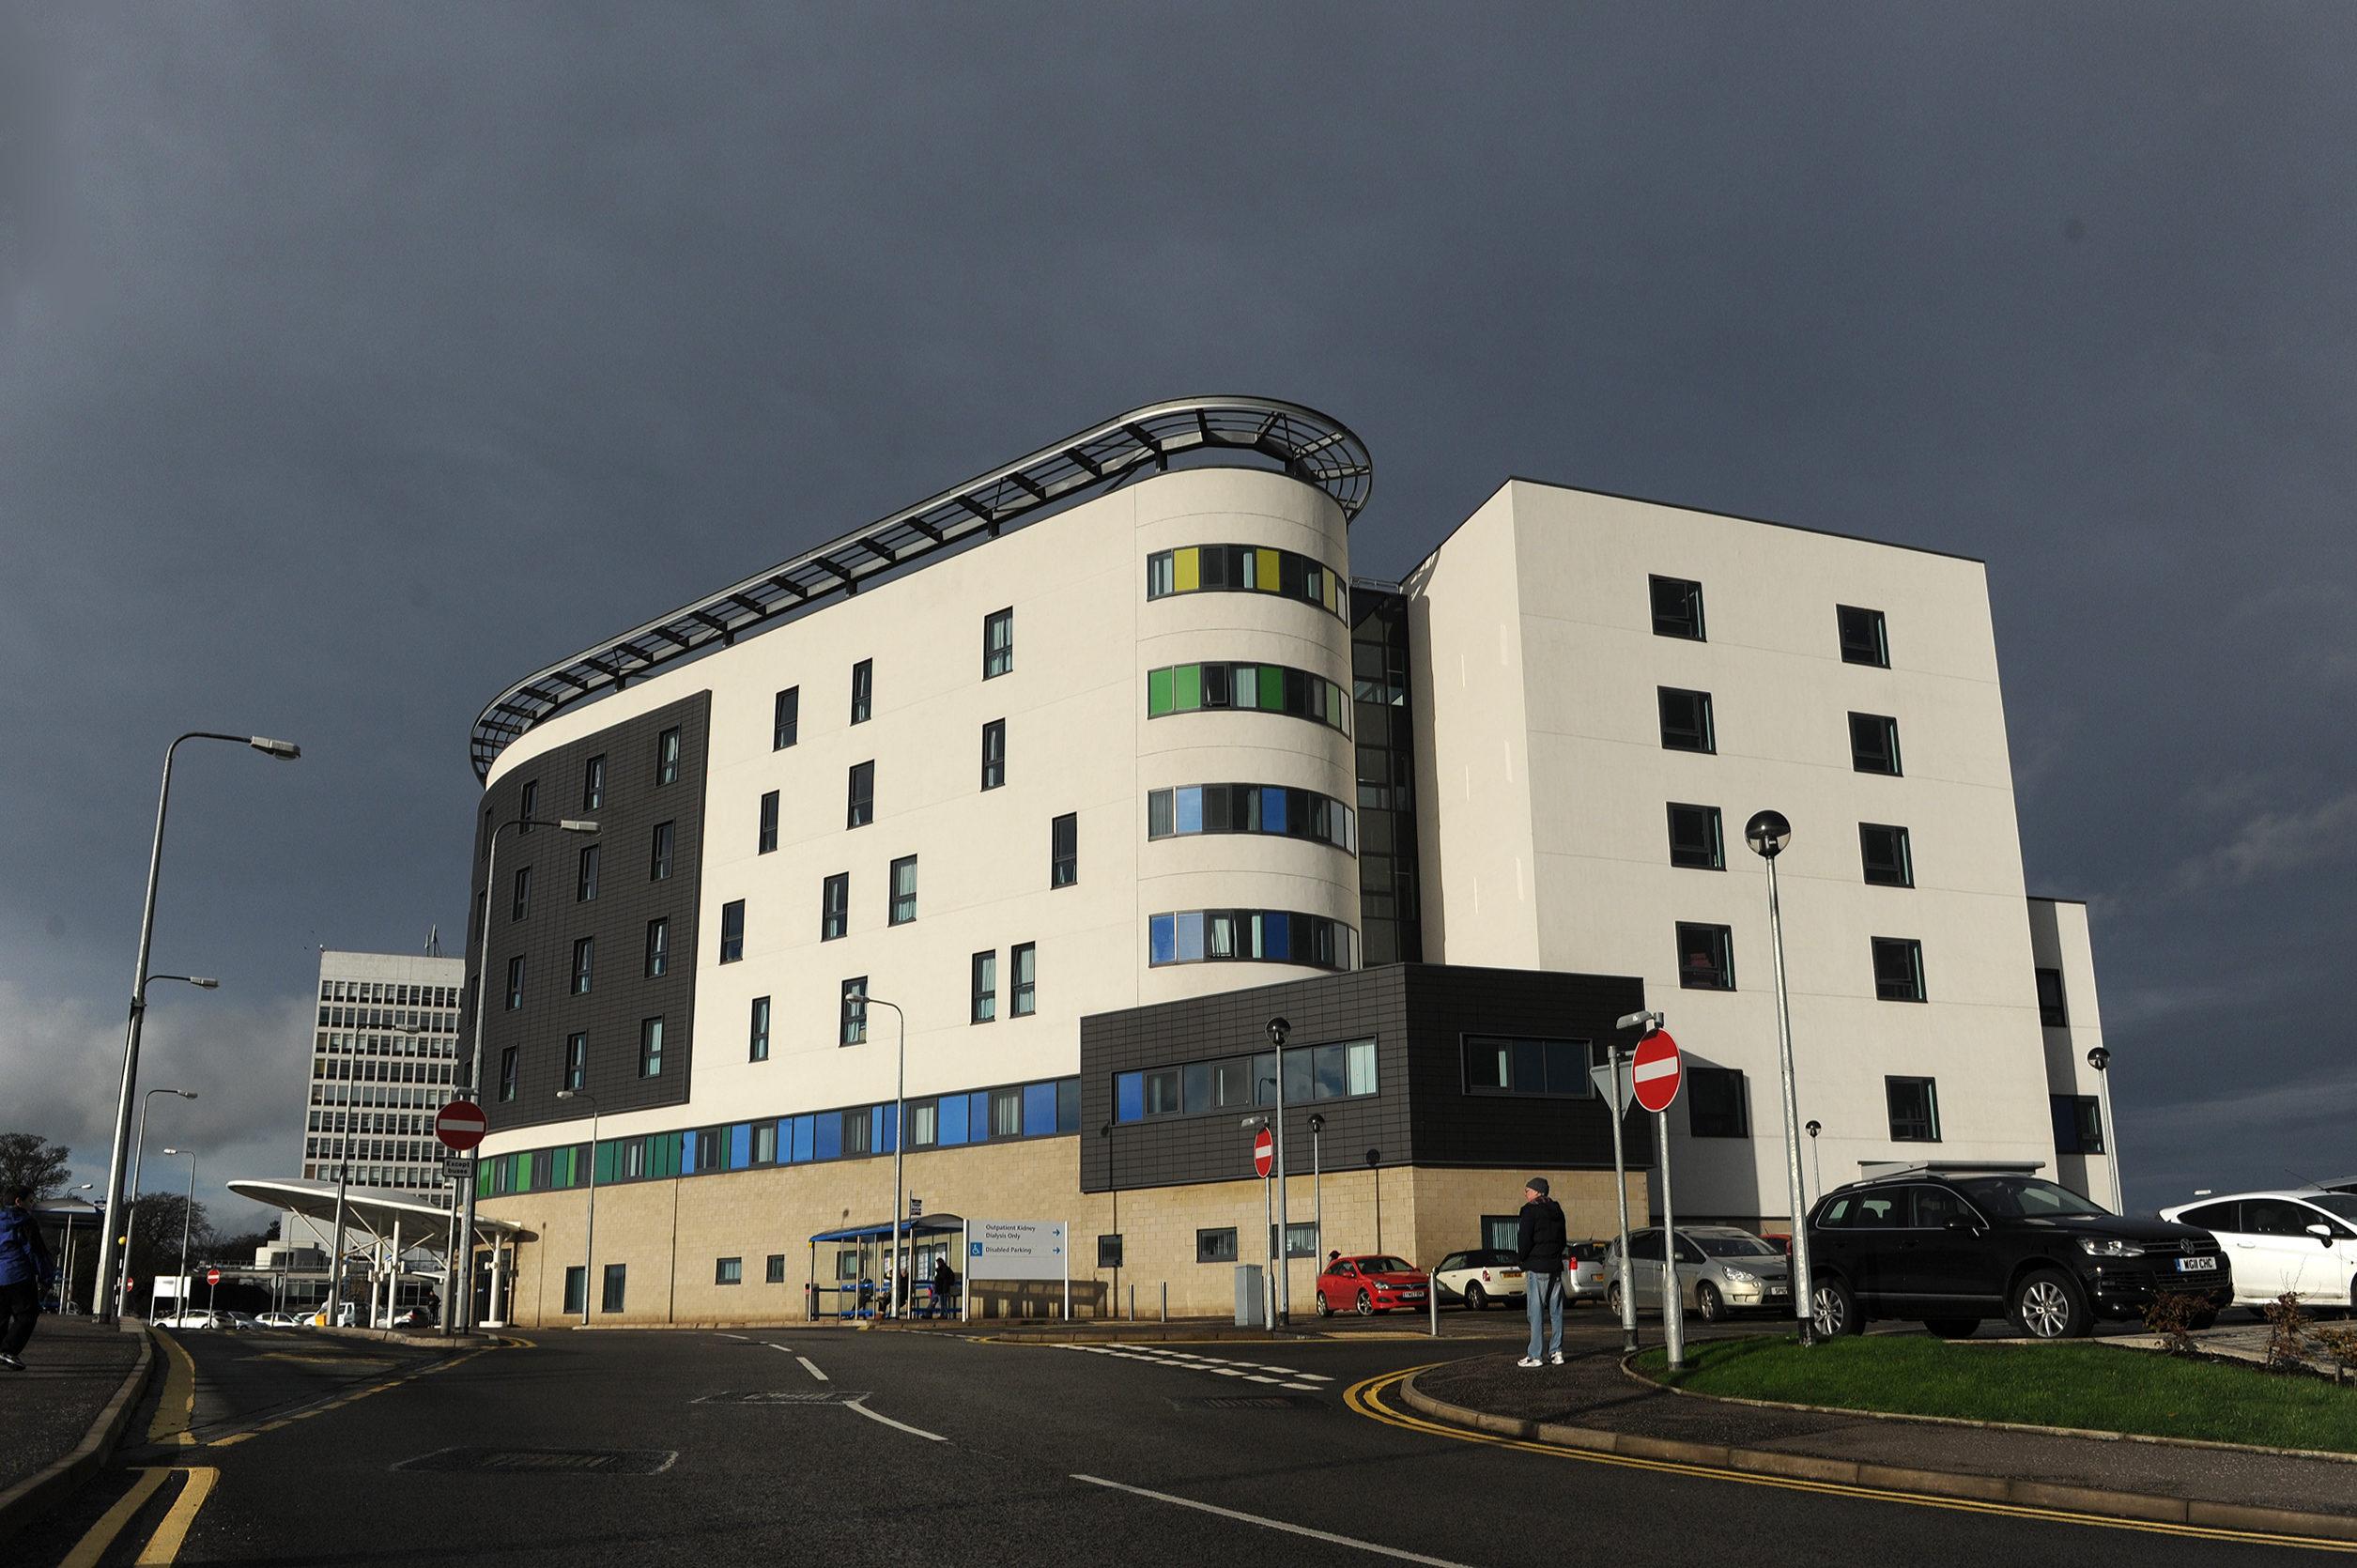 The Victoria Hospital in Kirkcaldy